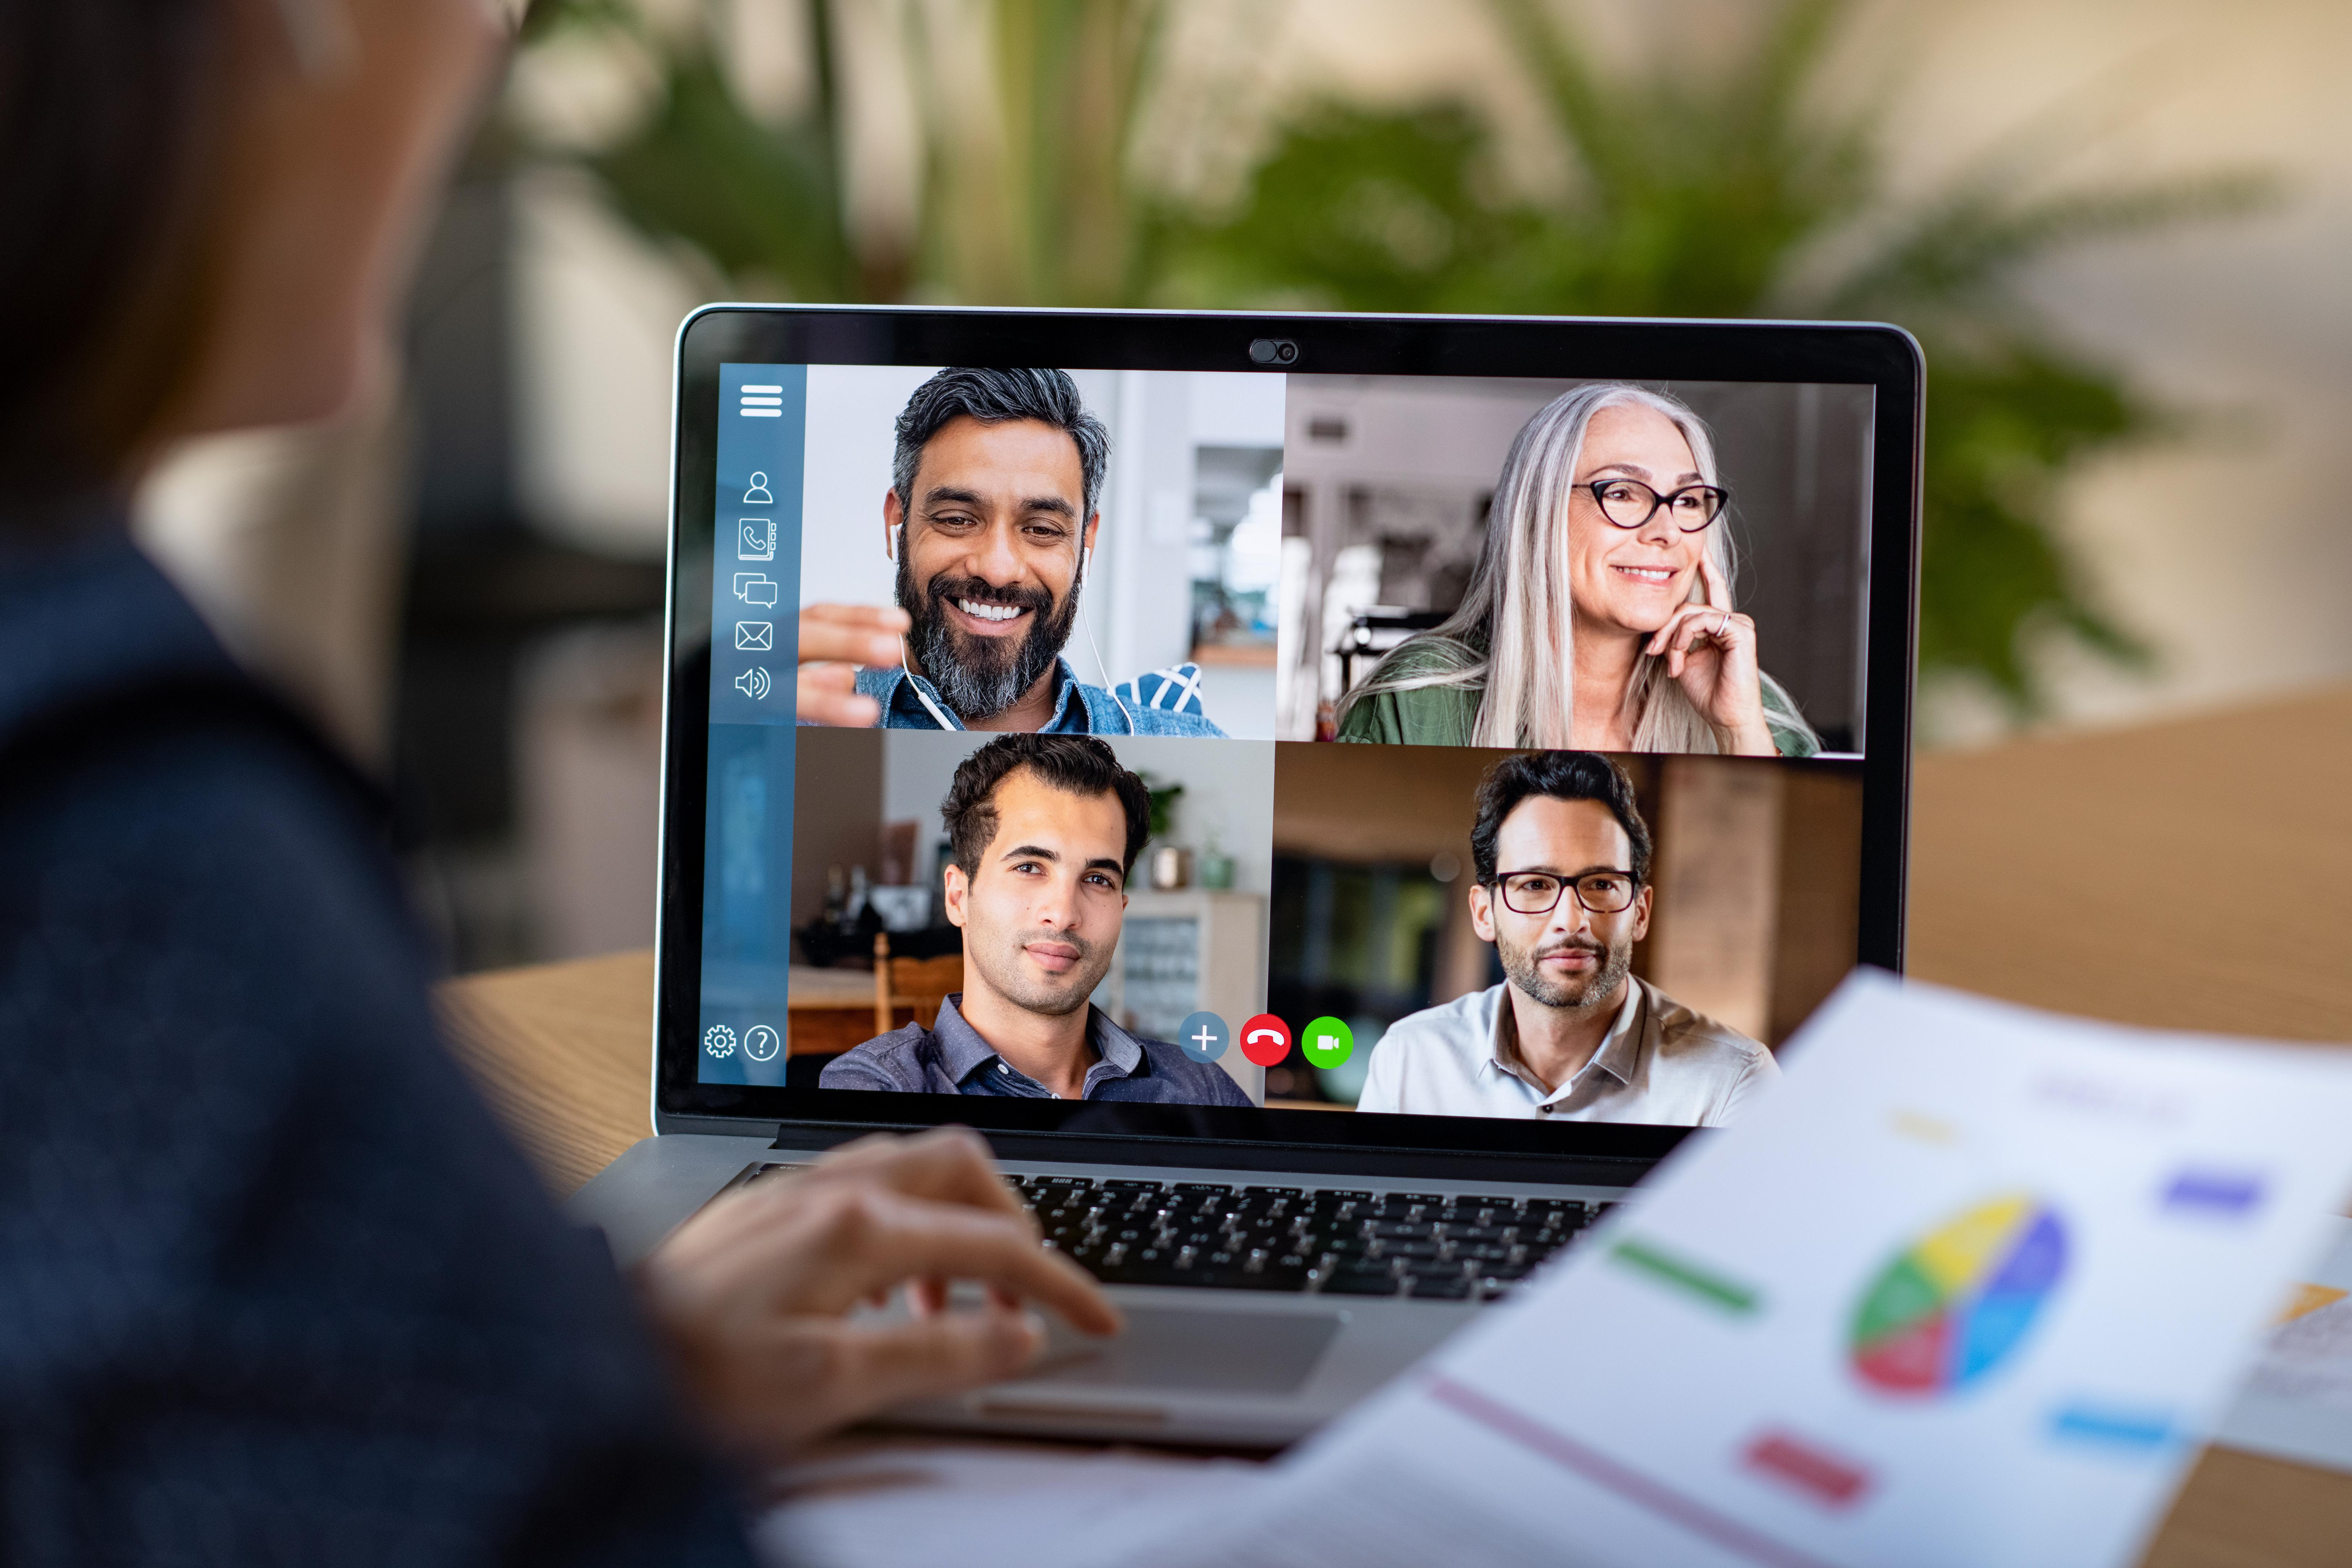 Why is video conferencing so exhausting? | Engadget